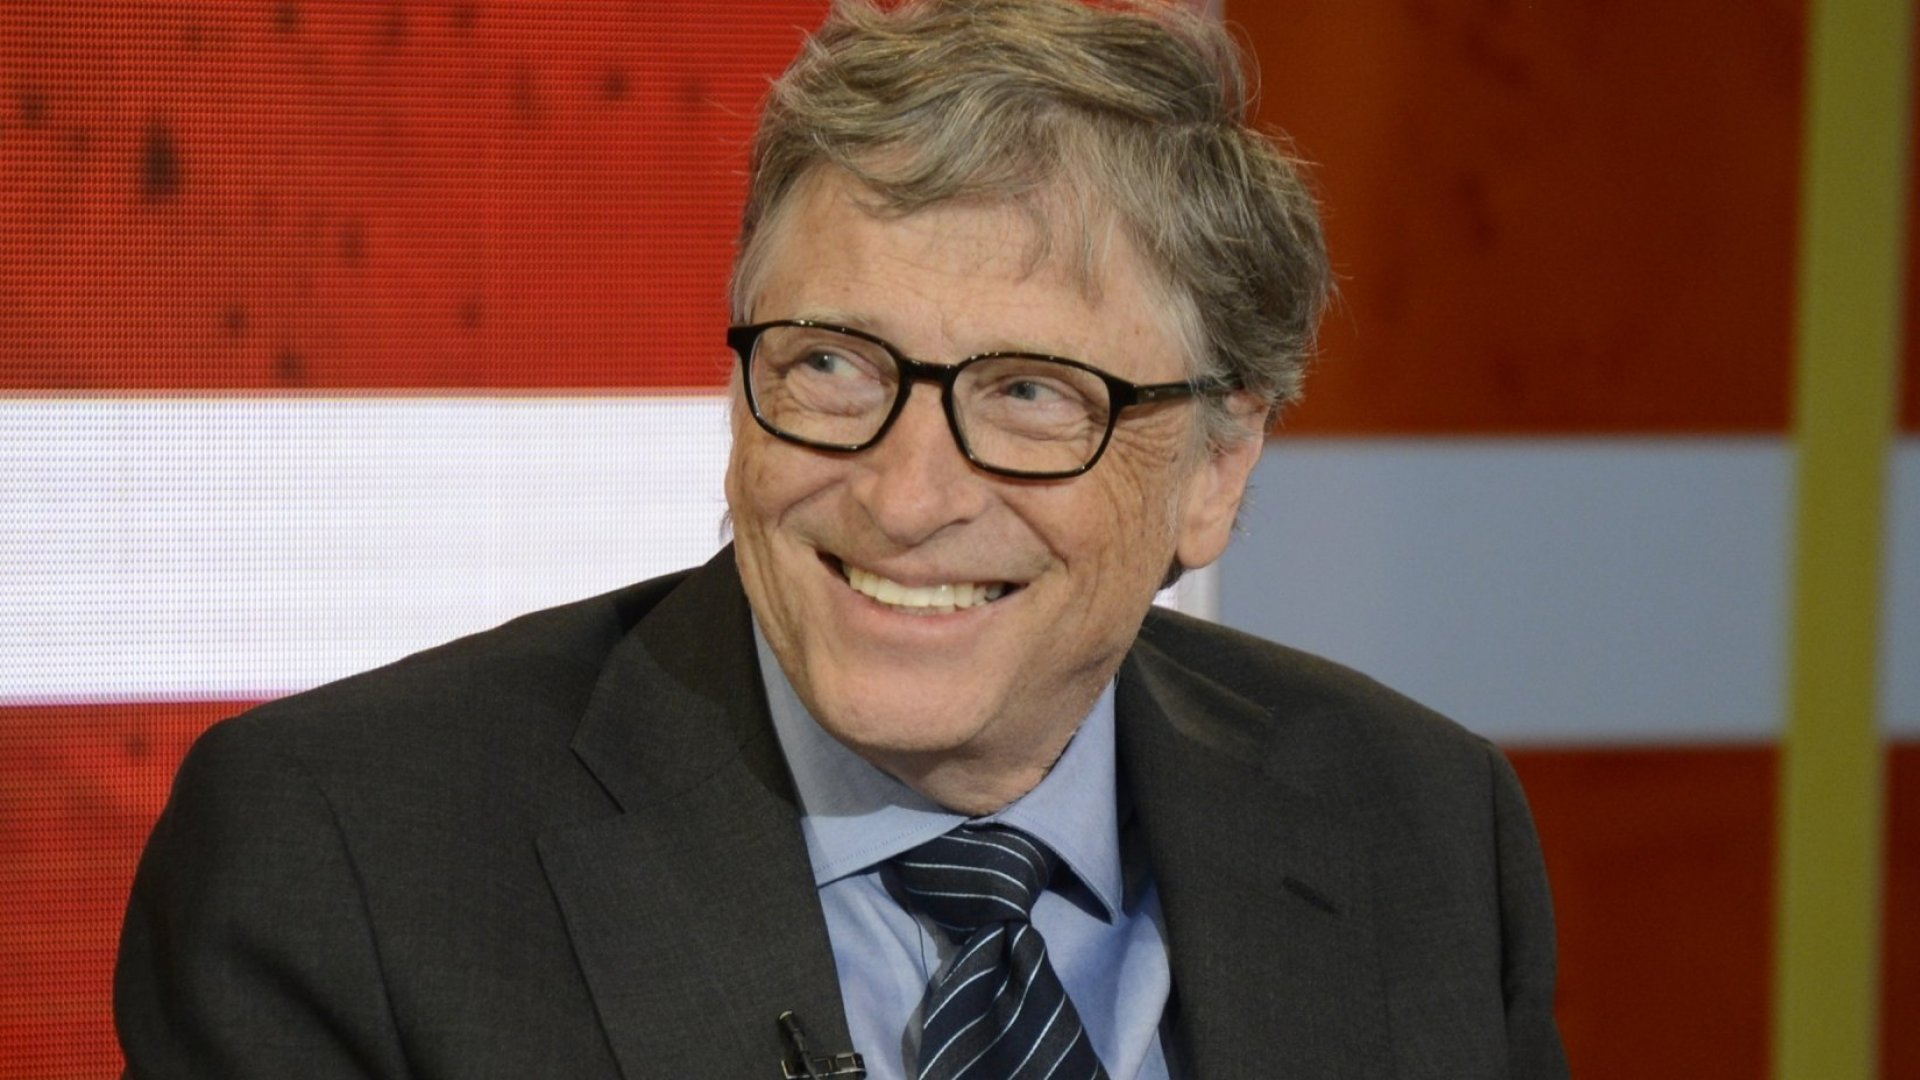 If You Want to Avoid Burnout, Adopt This Simple Habit From 28-Year-Old Bill Gates